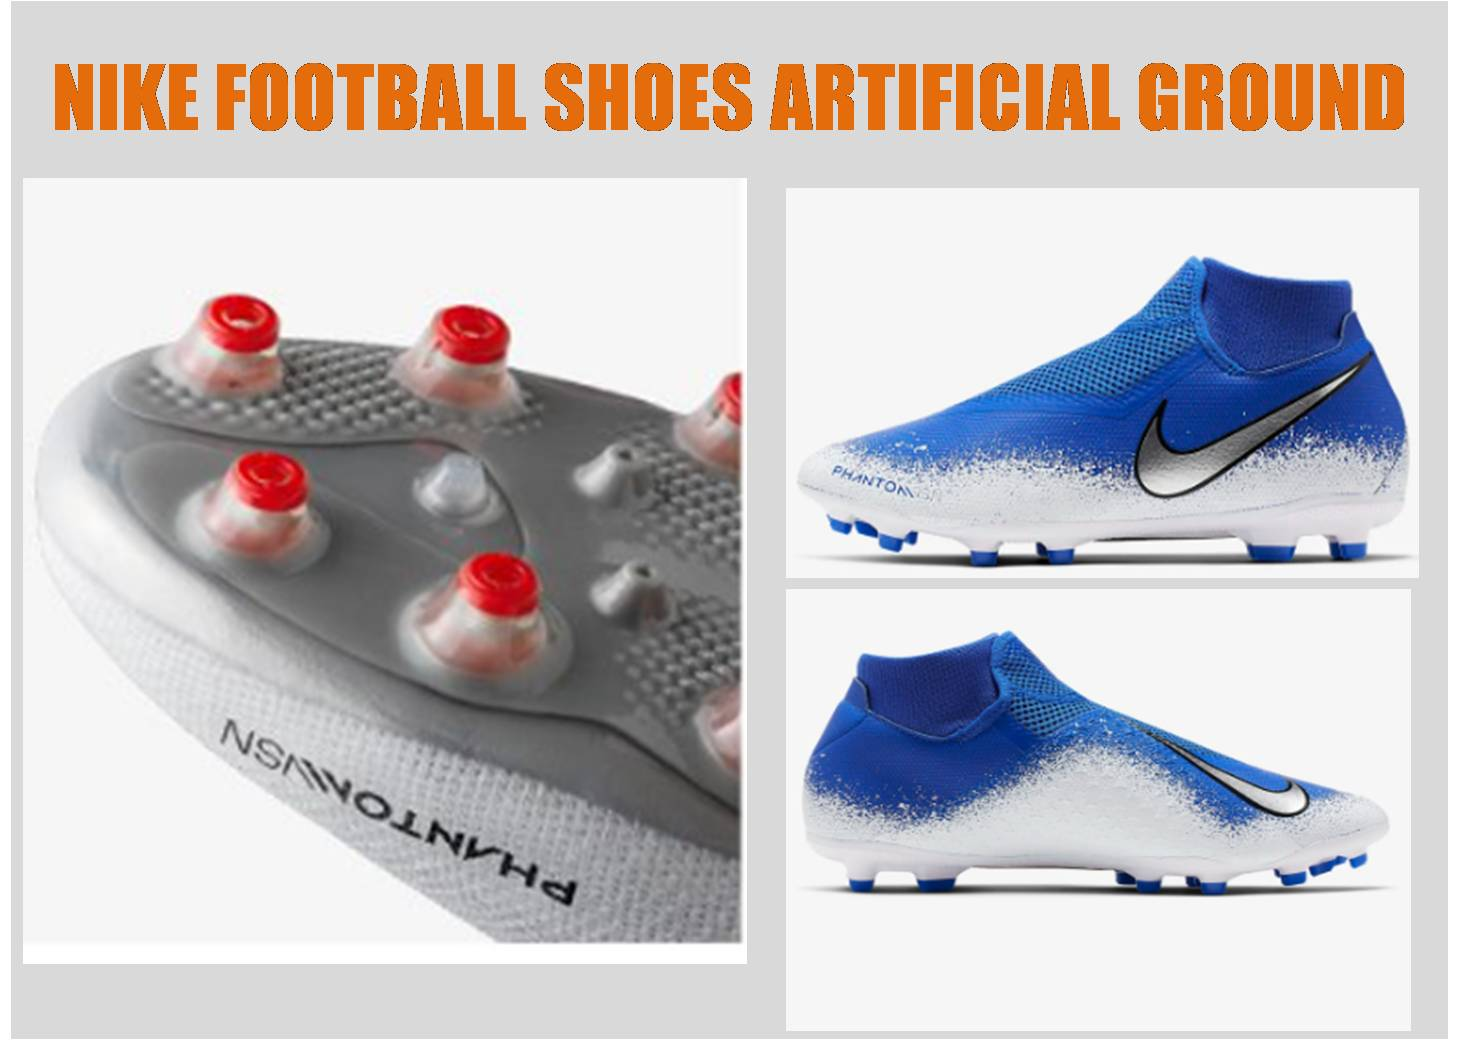 NIKE_FOOTBALL_SHOES_FOR_ARTIFICIAL_GROUND